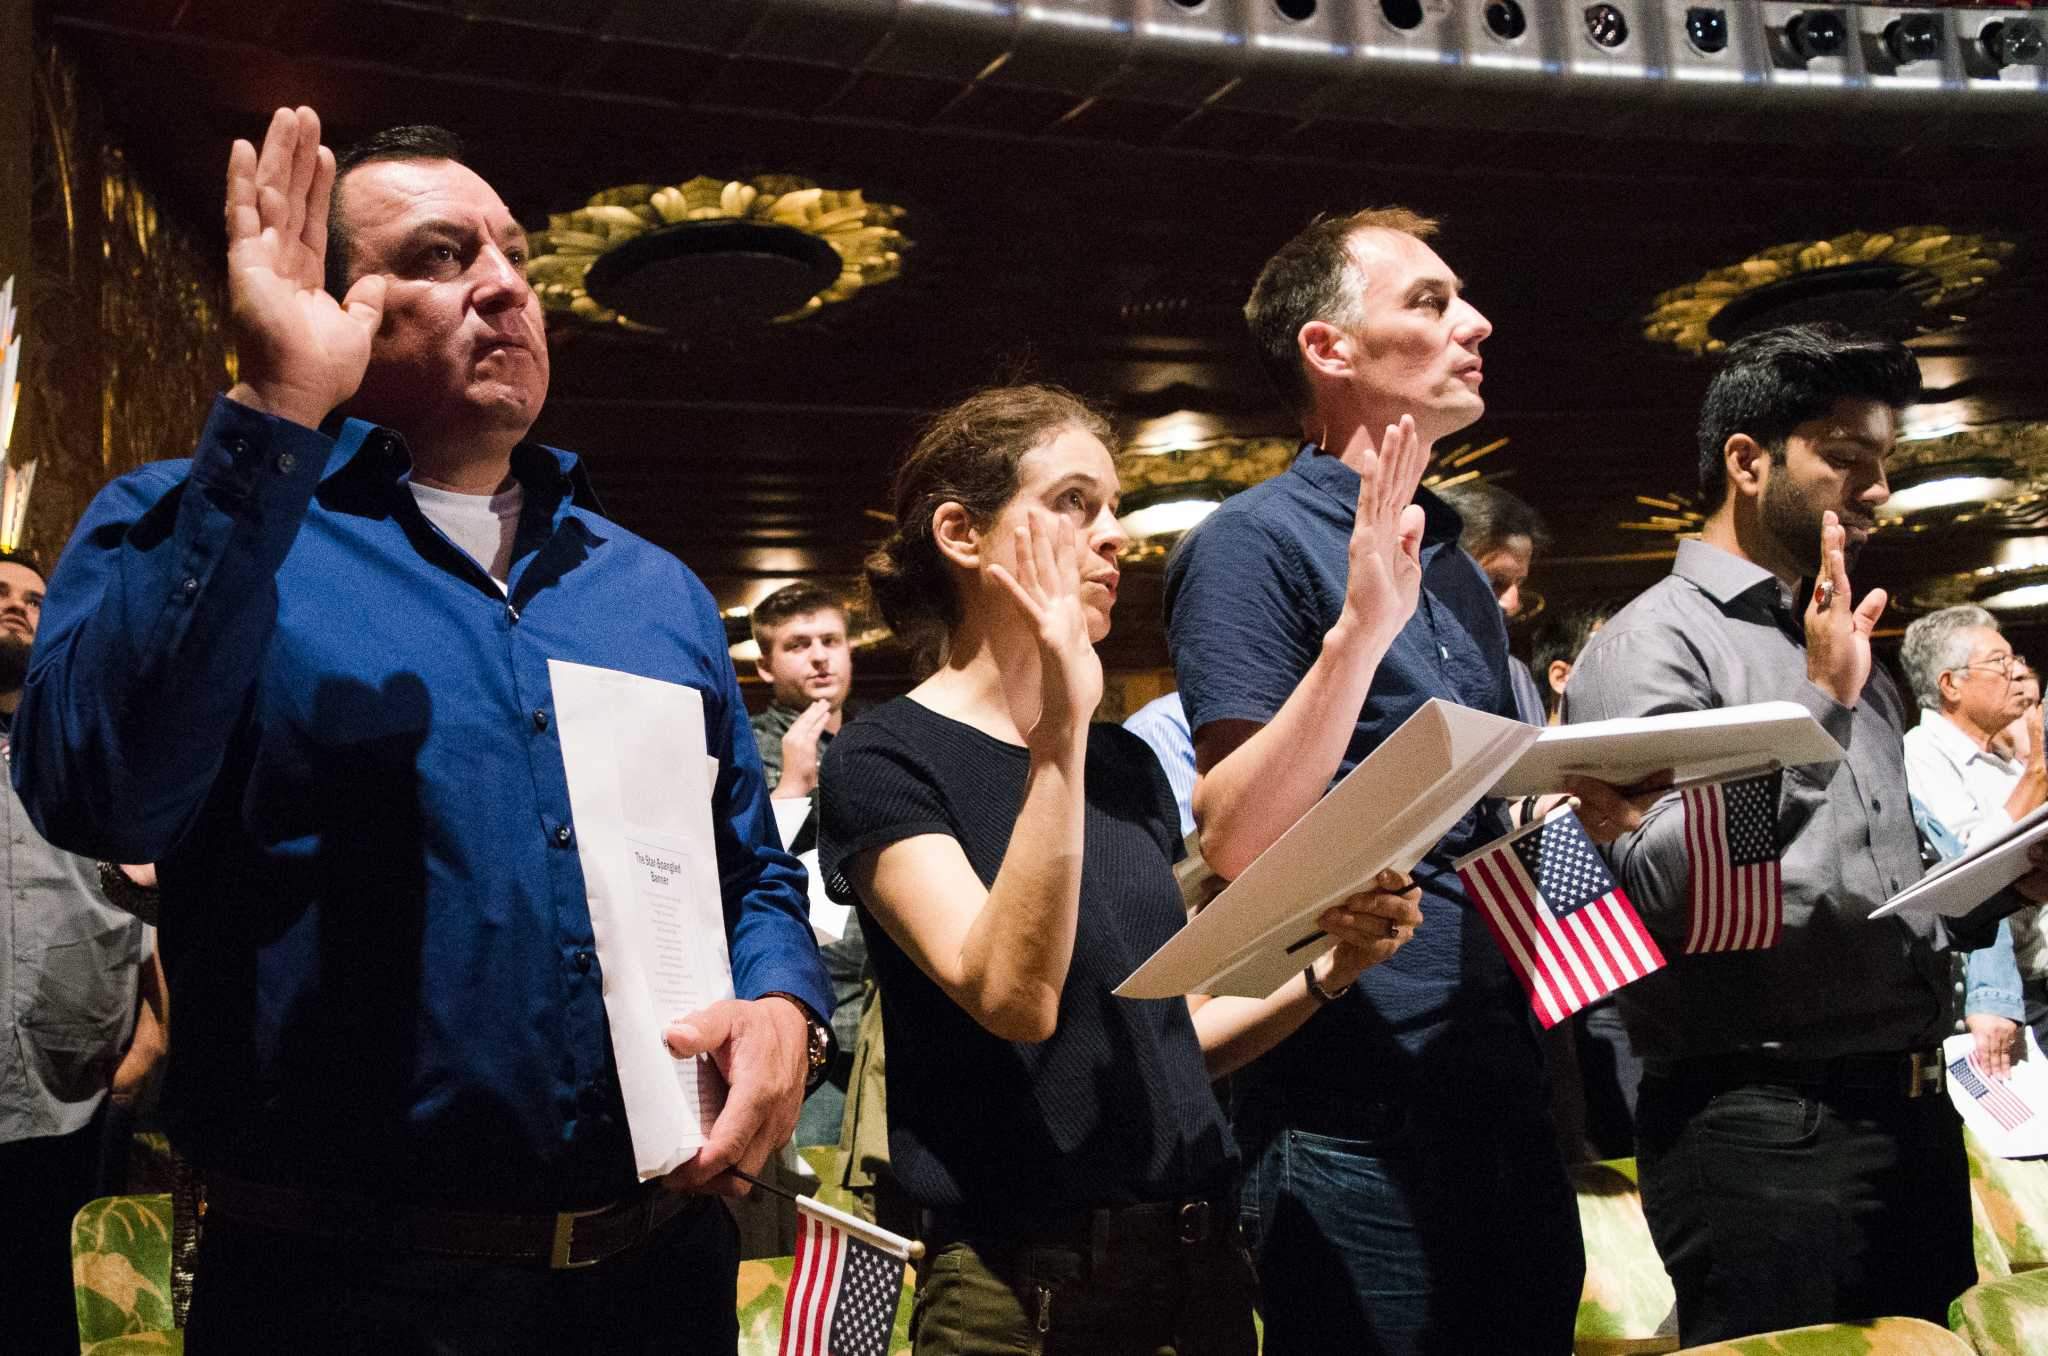 New citizens take an oath of allegiance during Register New Citizens to Vote hosted by Democracy Action at Paramount Theatre in Oakland on Thursday, September 7, 2017. (Richard Lomibao/Golden Gate Xpress)